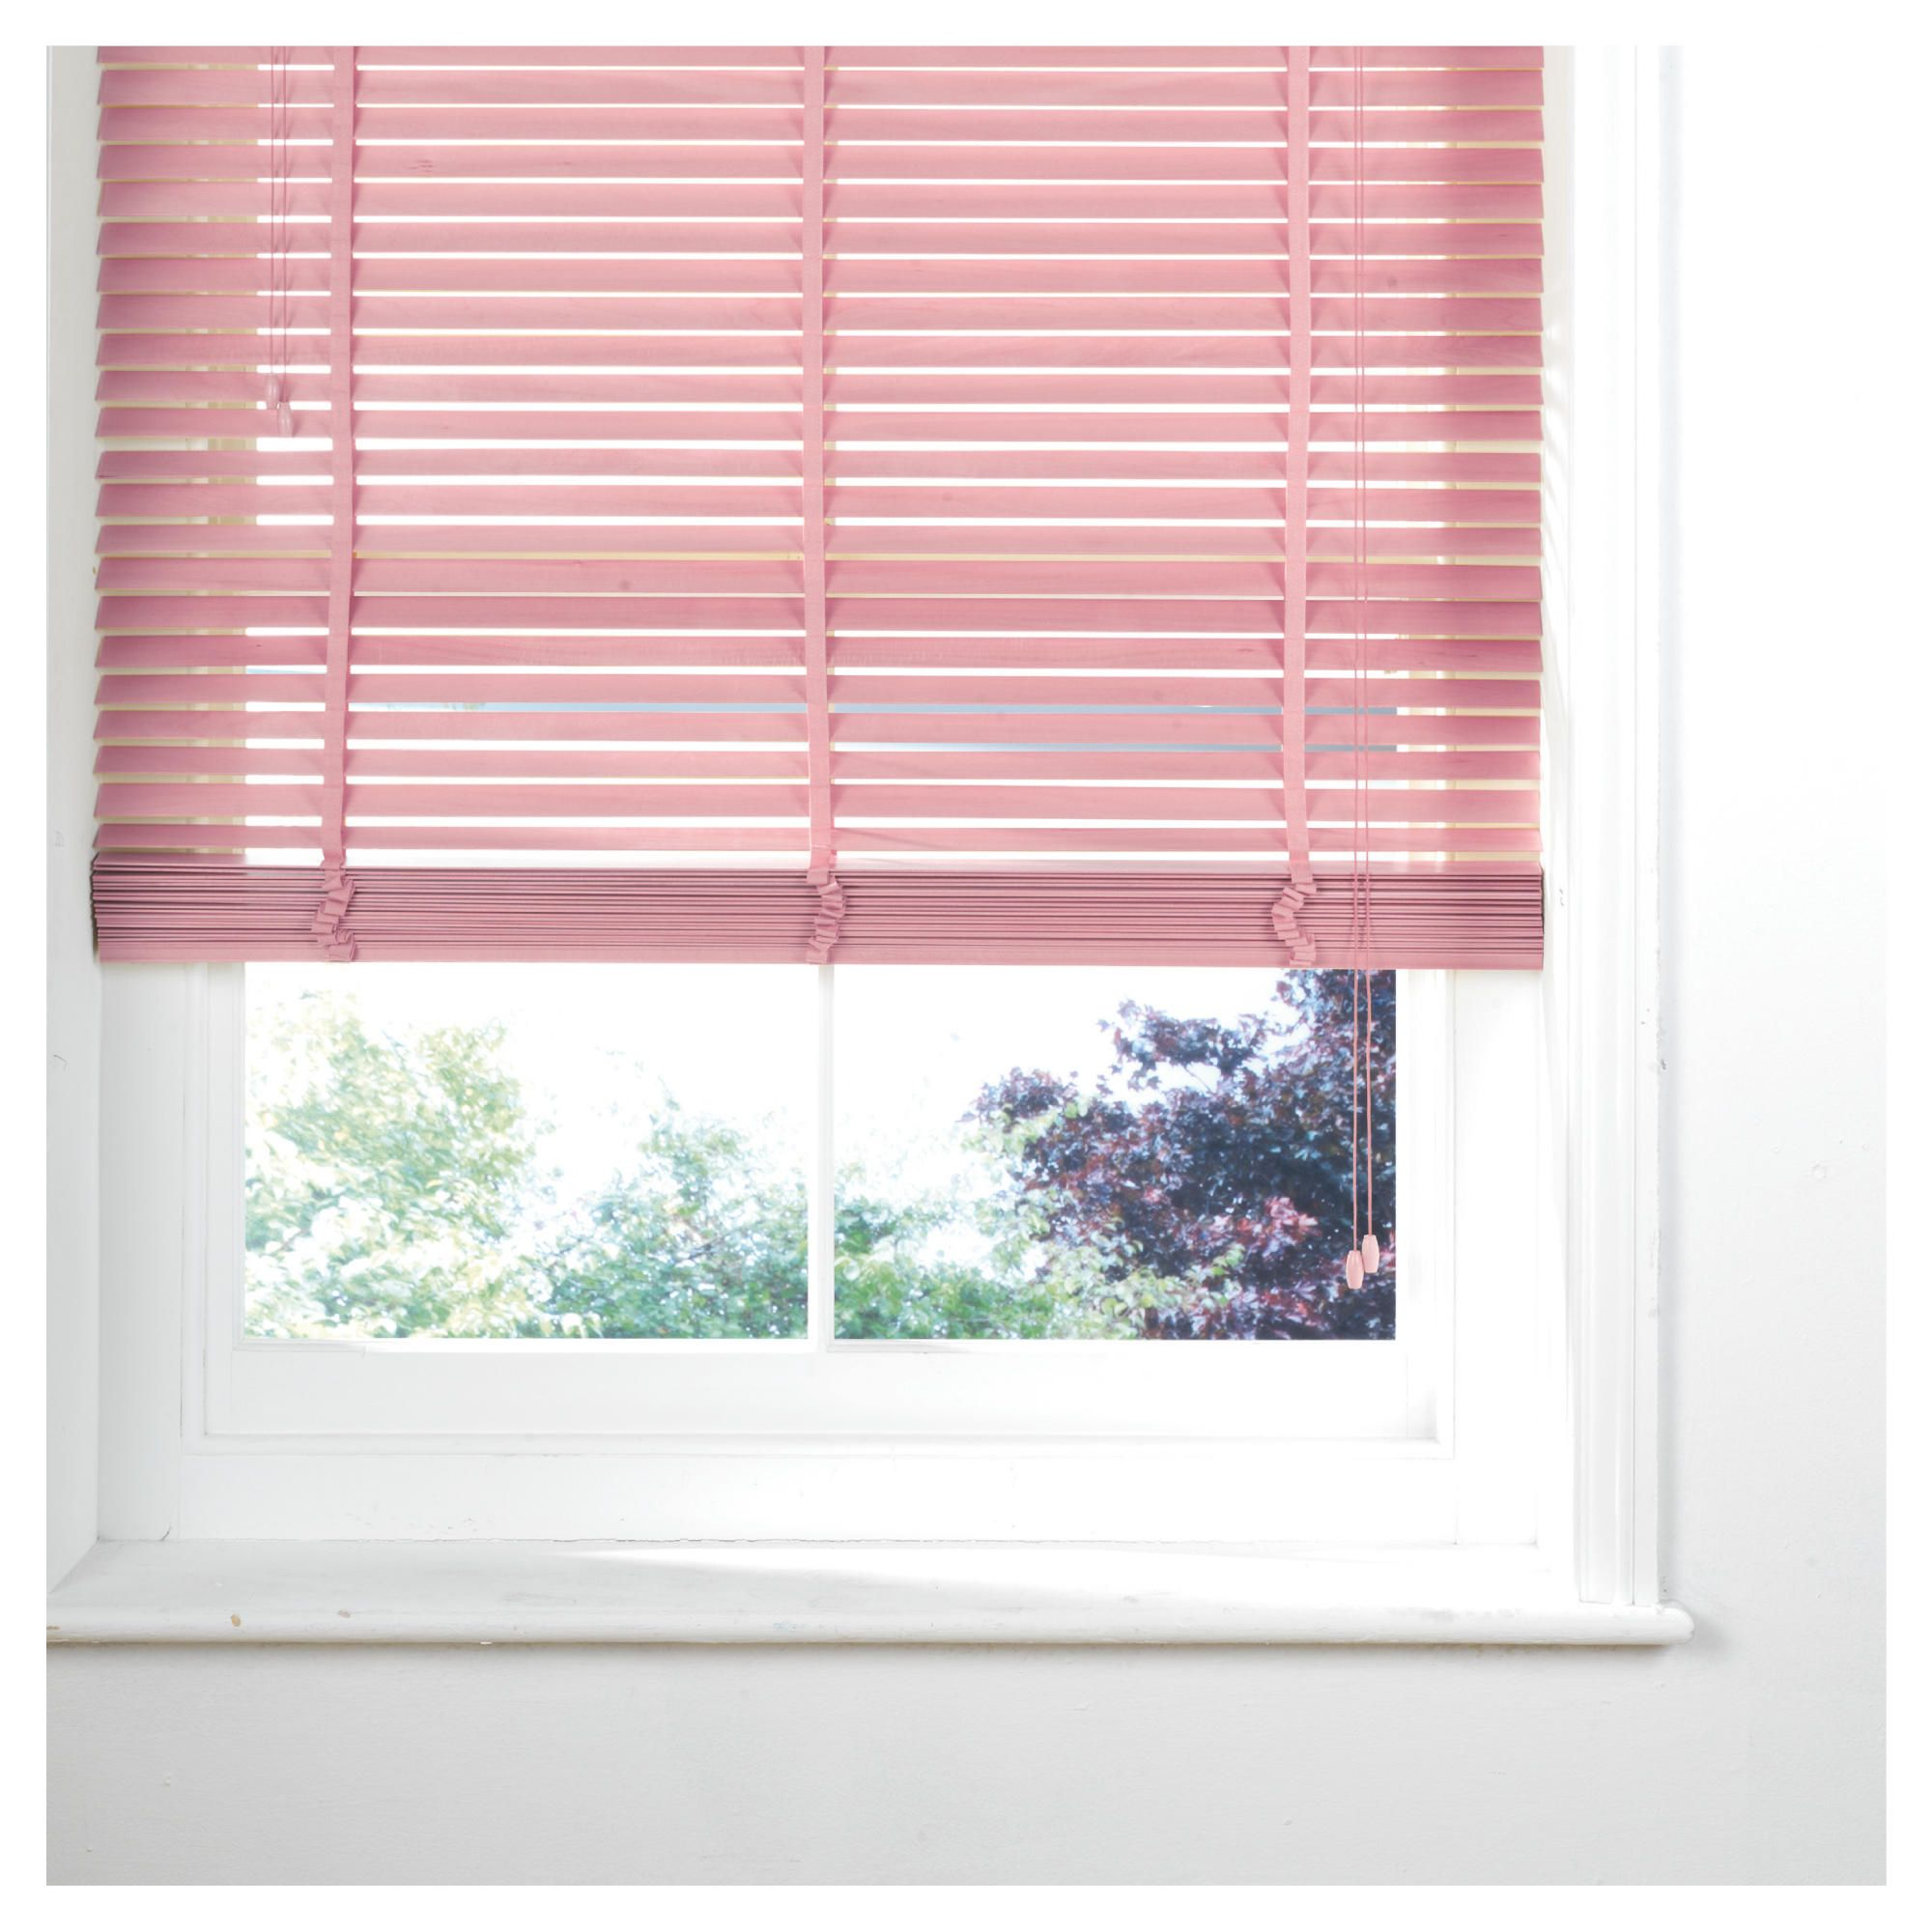 how to clean filthy venetian blinds